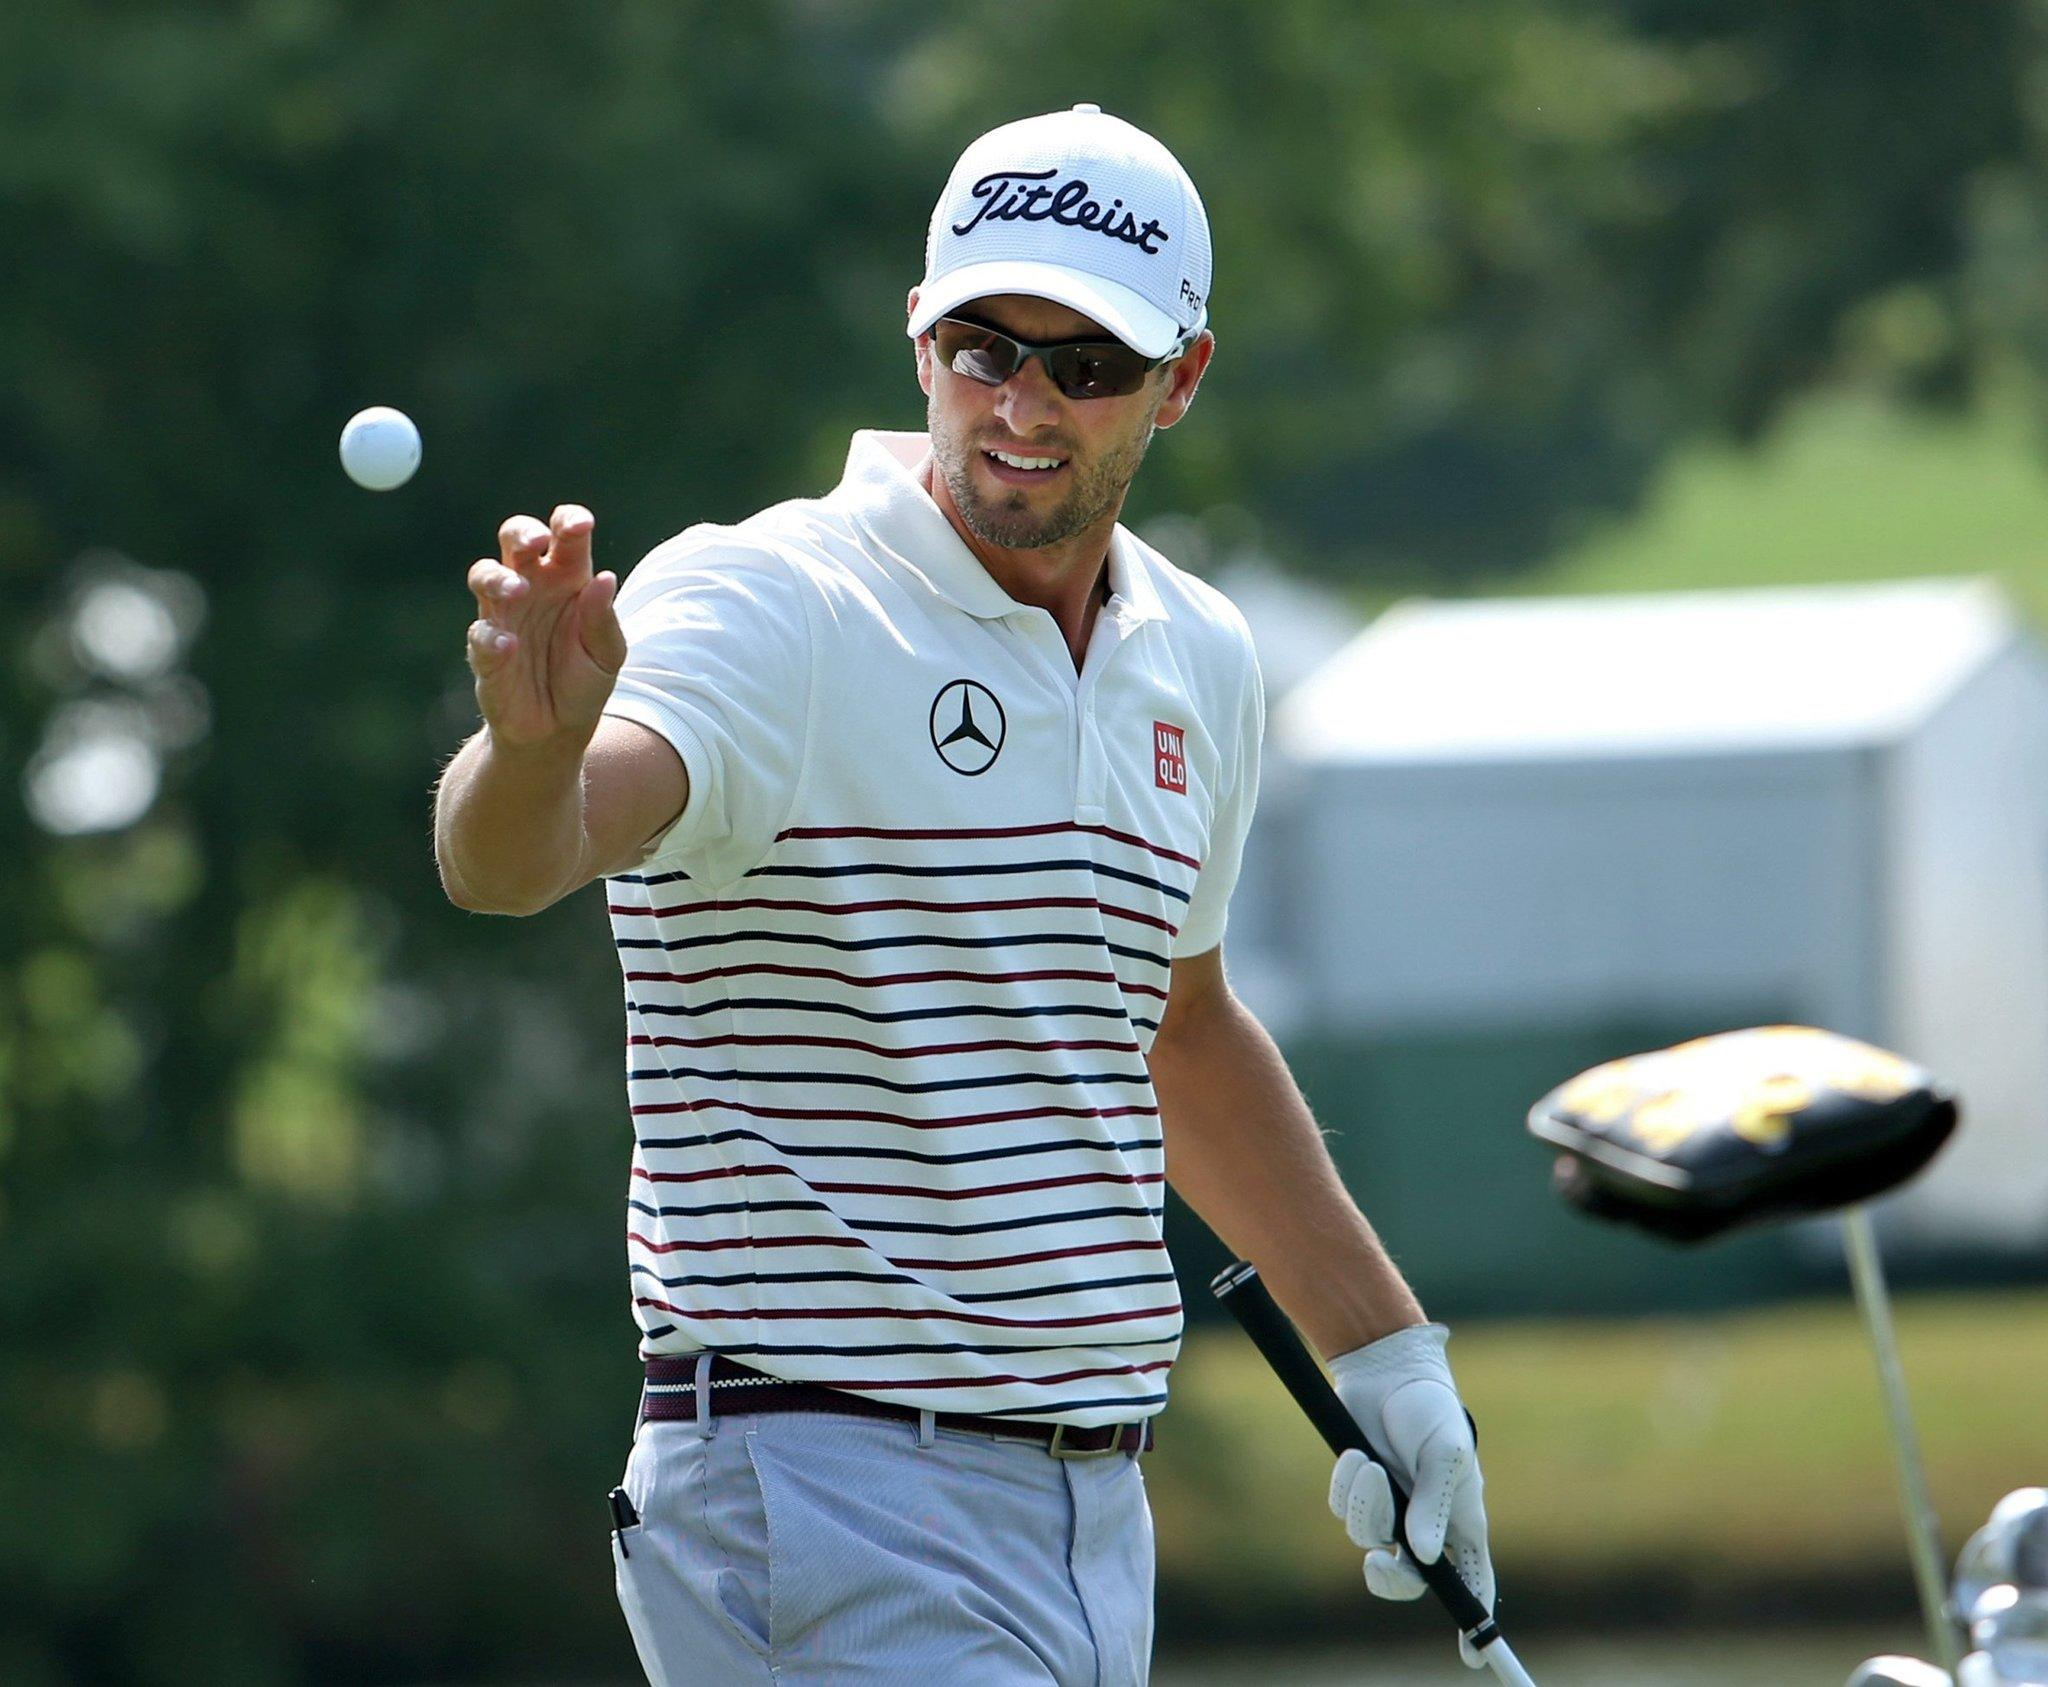 Adam Scott catches a ball from caddie Steve Williams during practice rounds of the Tour Championship at East Lake Golf Club in Atlanta.